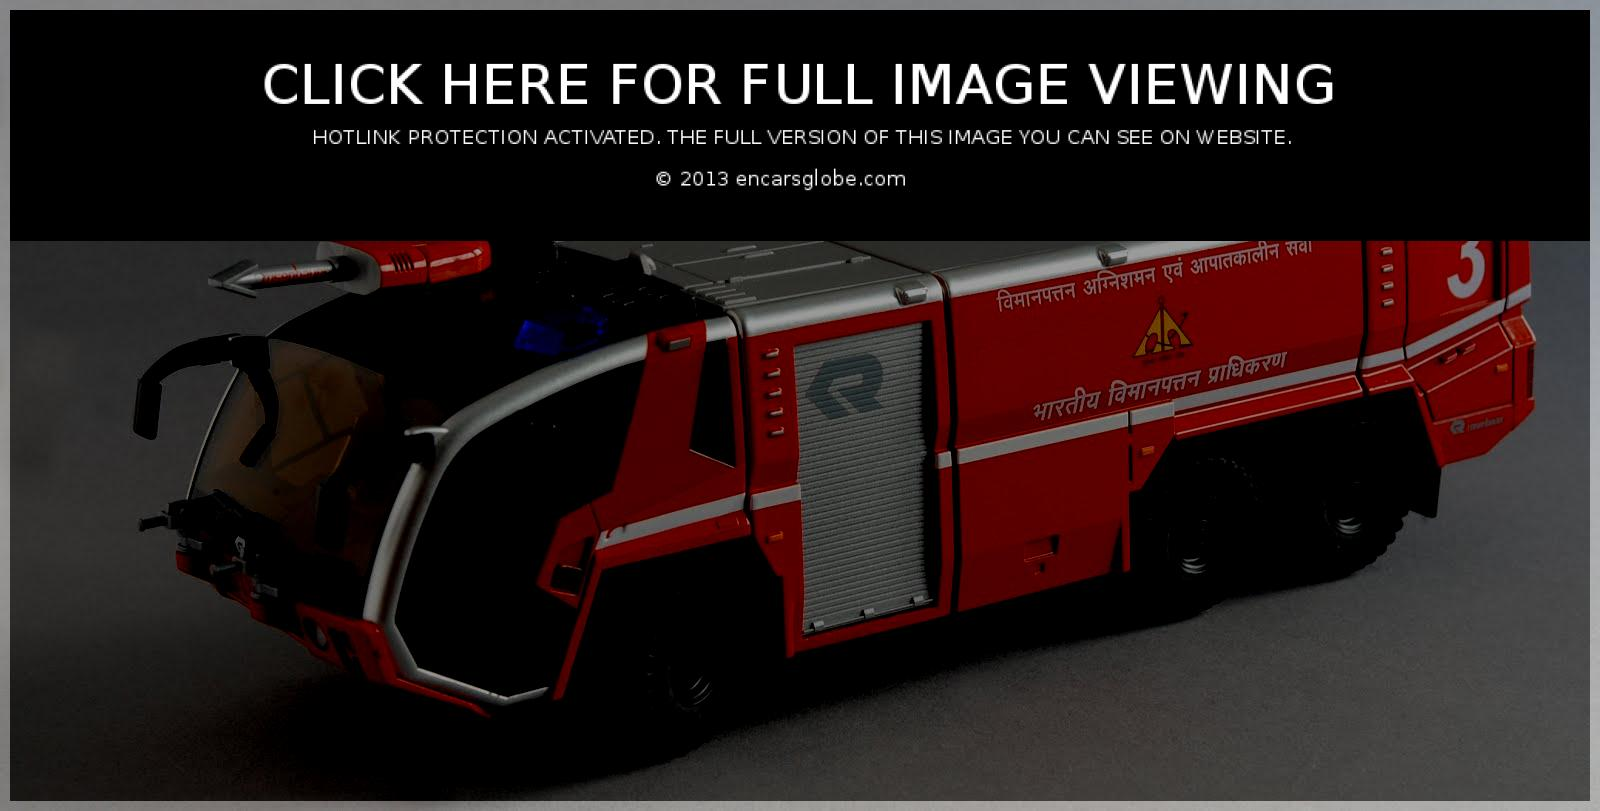 Rosenbauer Panther FL 6x6 Photo Gallery: Photo #08 out of 10 ...